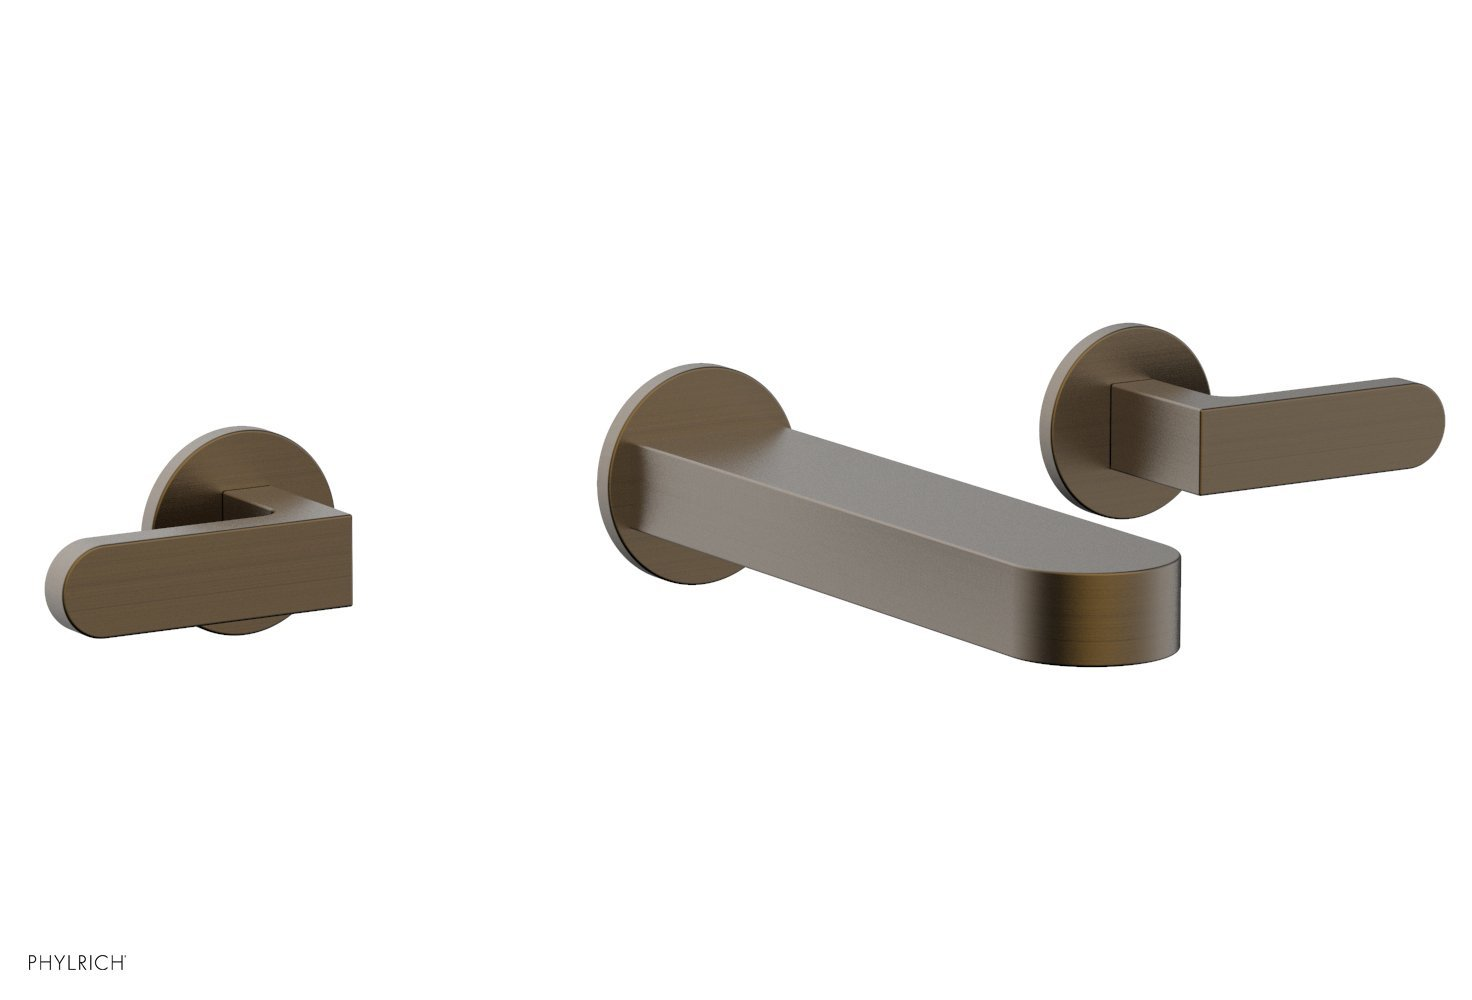 Phylrich 183-12-OEB ROND Wall Lavatory Set - Lever Handles - Old English Brass